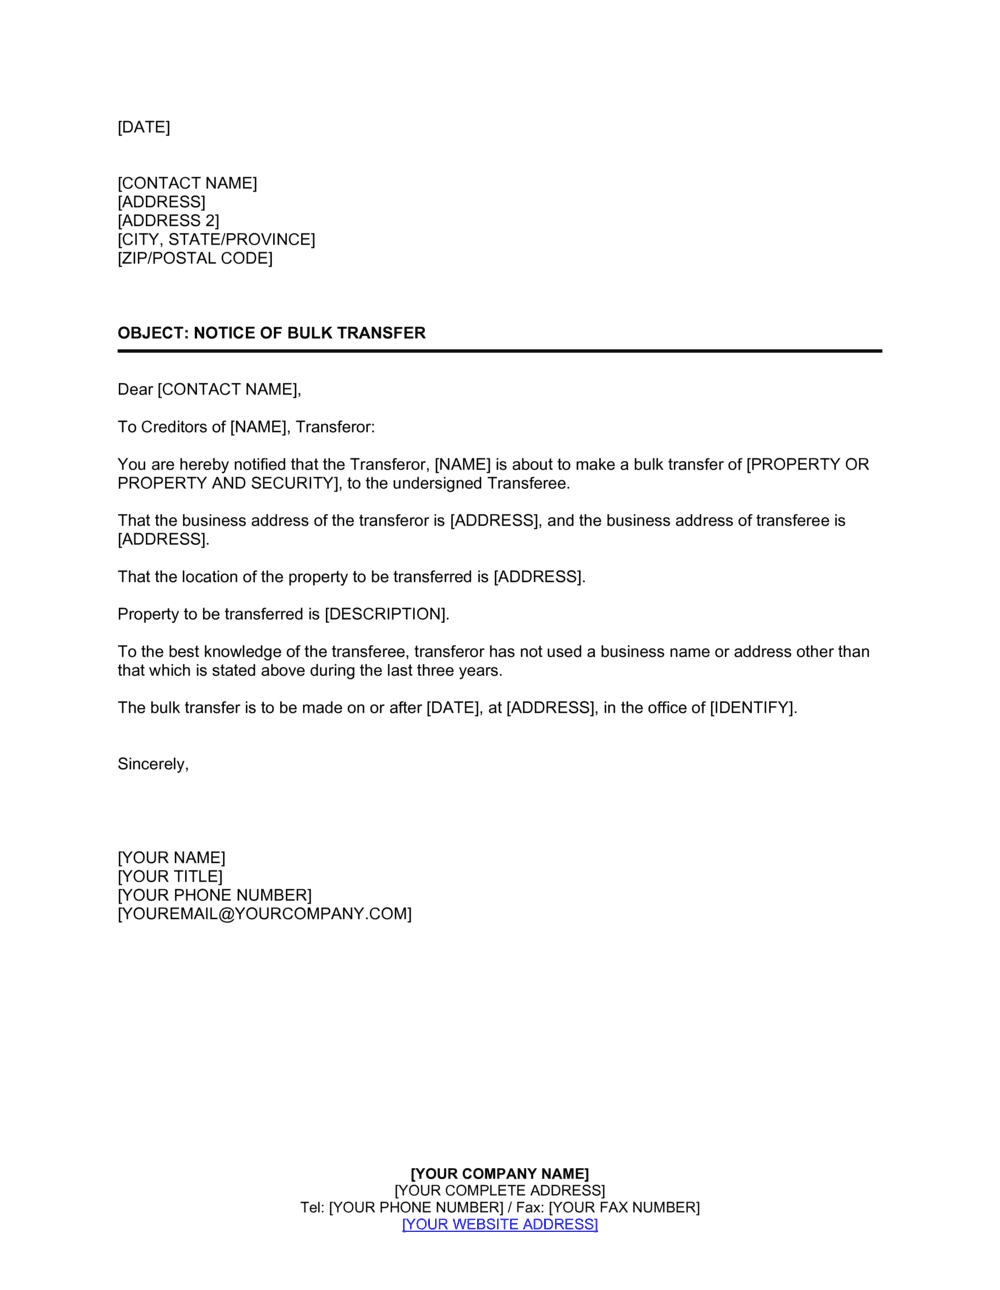 Business-in-a-Box's Notice of Bulk Transfer Template